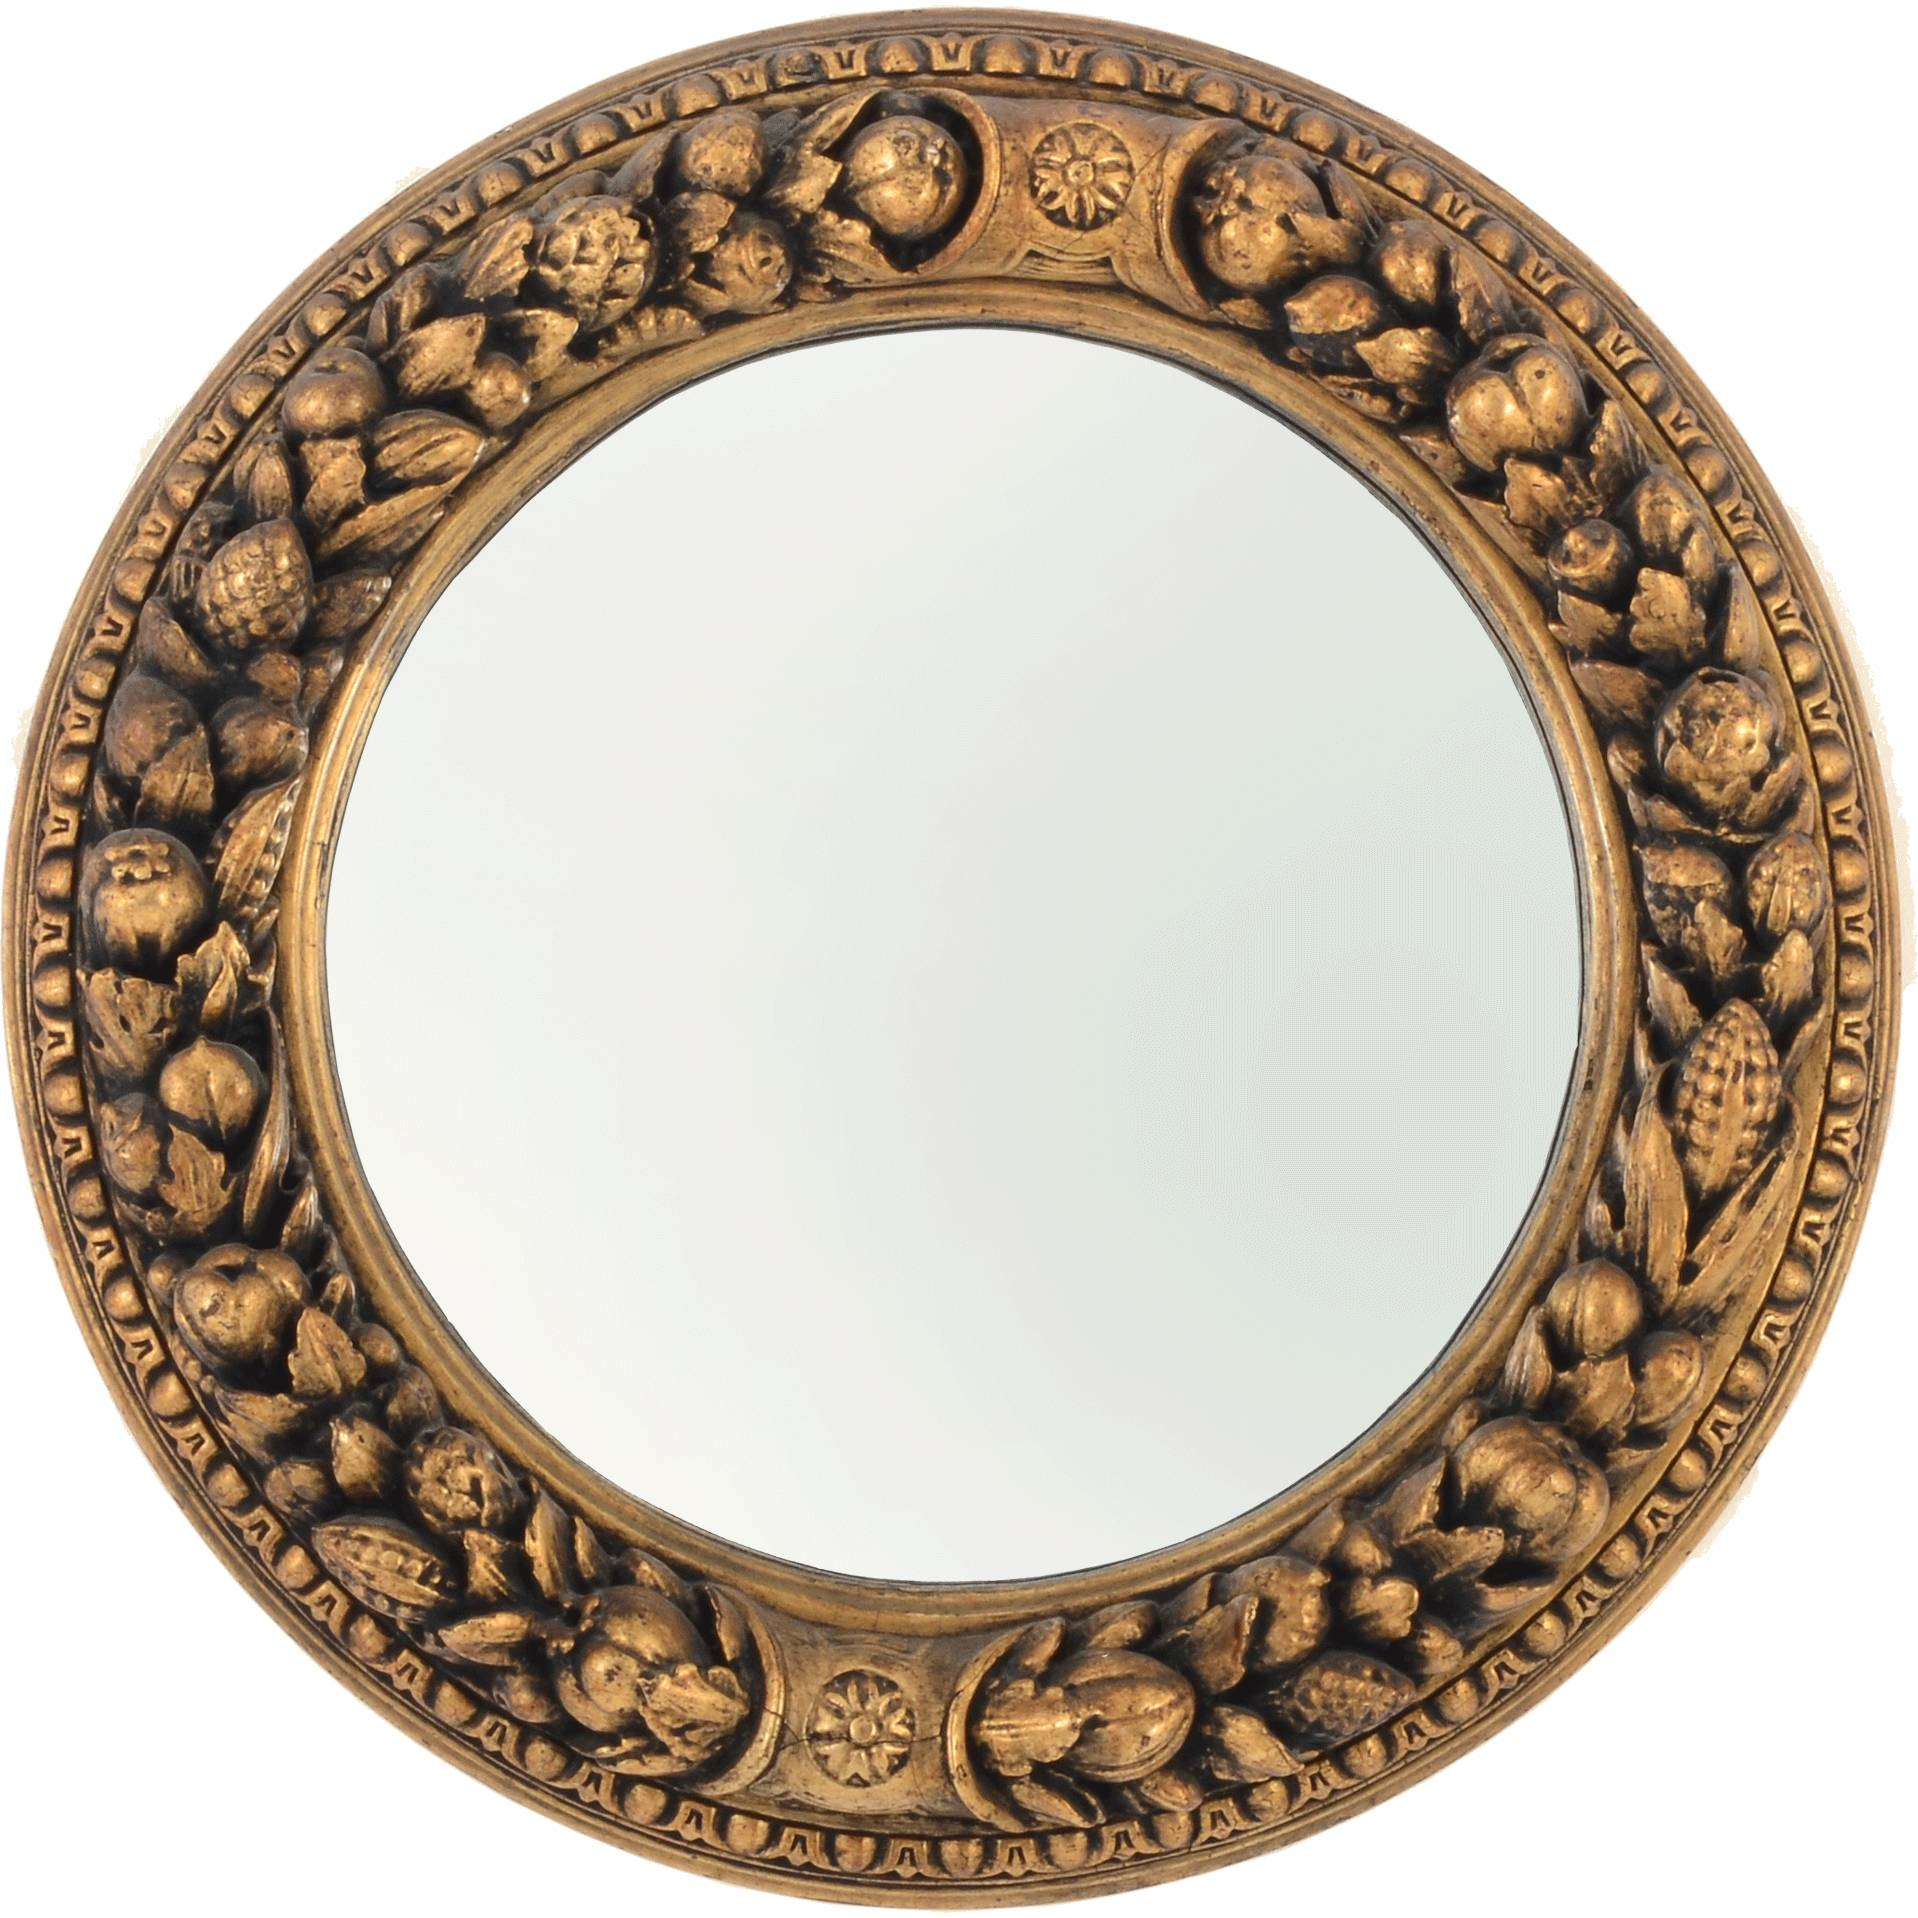 Victorian Round Gilt Mirror Sold On Ruby Lane Intended For Round Gilt Mirrors (View 6 of 15)